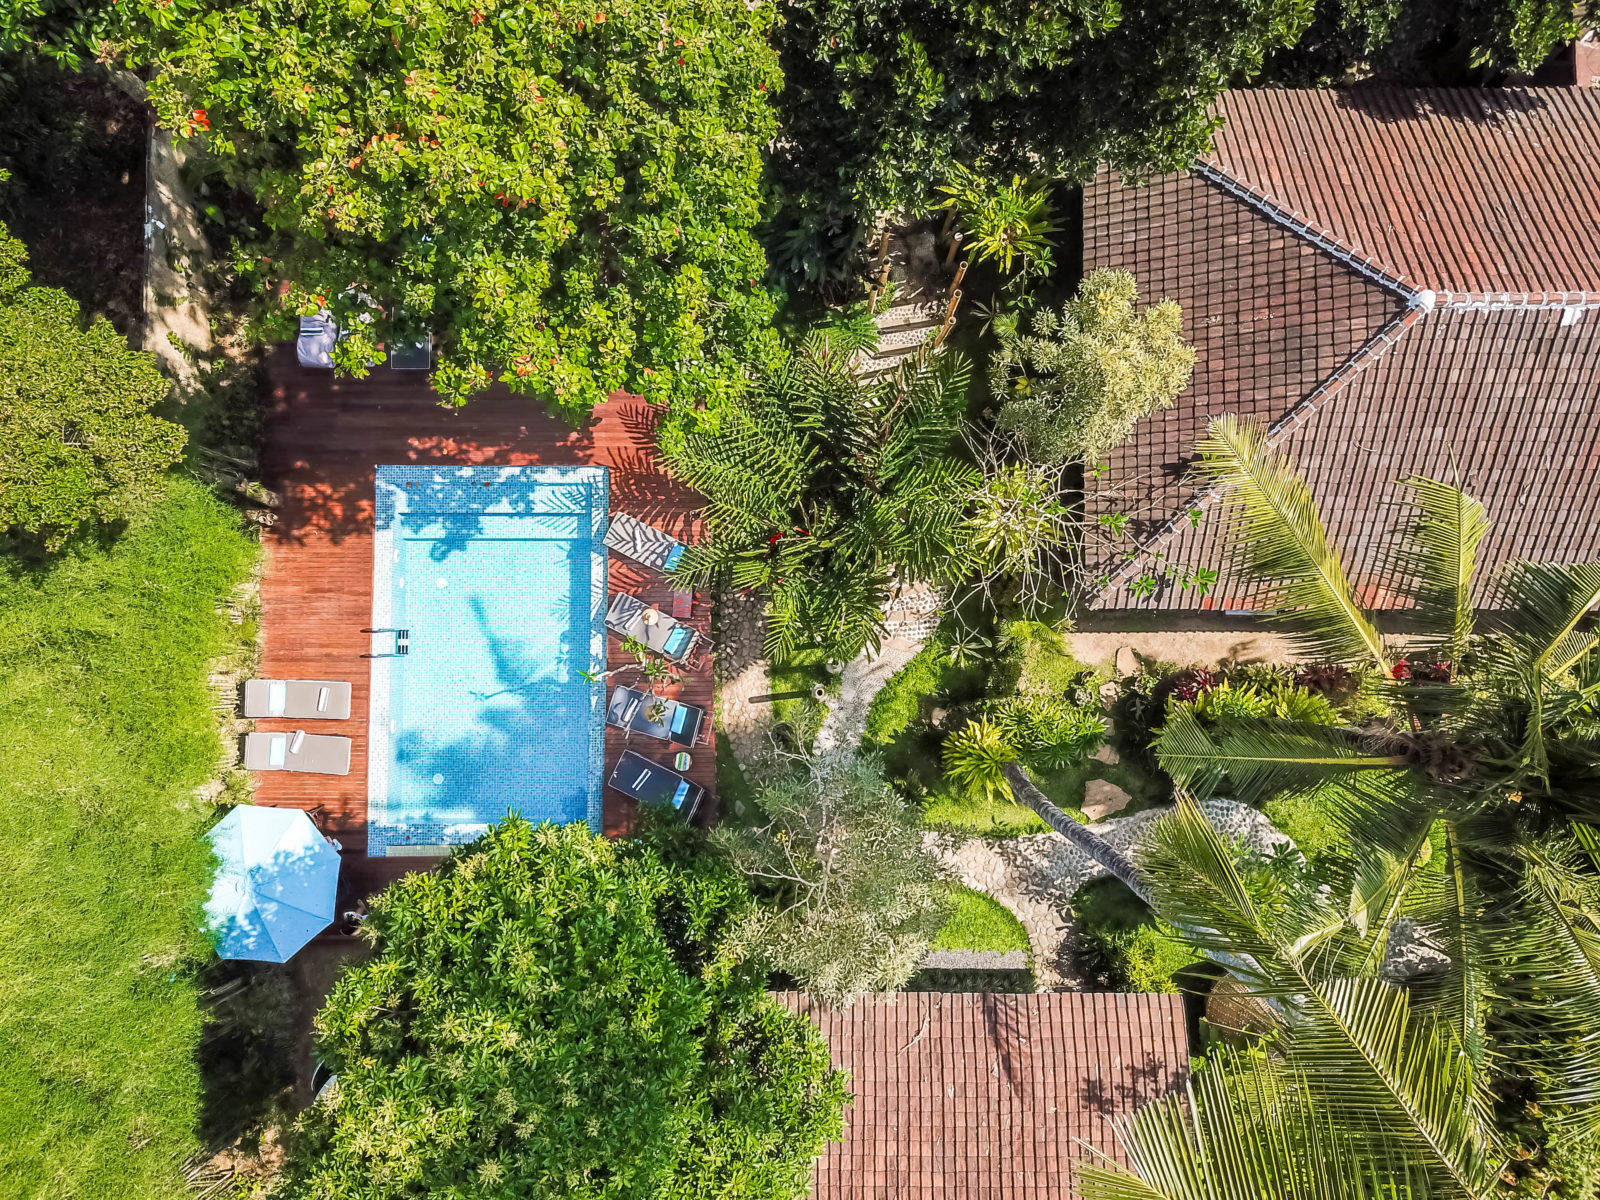 Canvas Escape Relax At This Boutique Lifestyle Resort In Ubud Bali Alexis Jetsets Travel Blog Alexis Jetsets Travel Blog